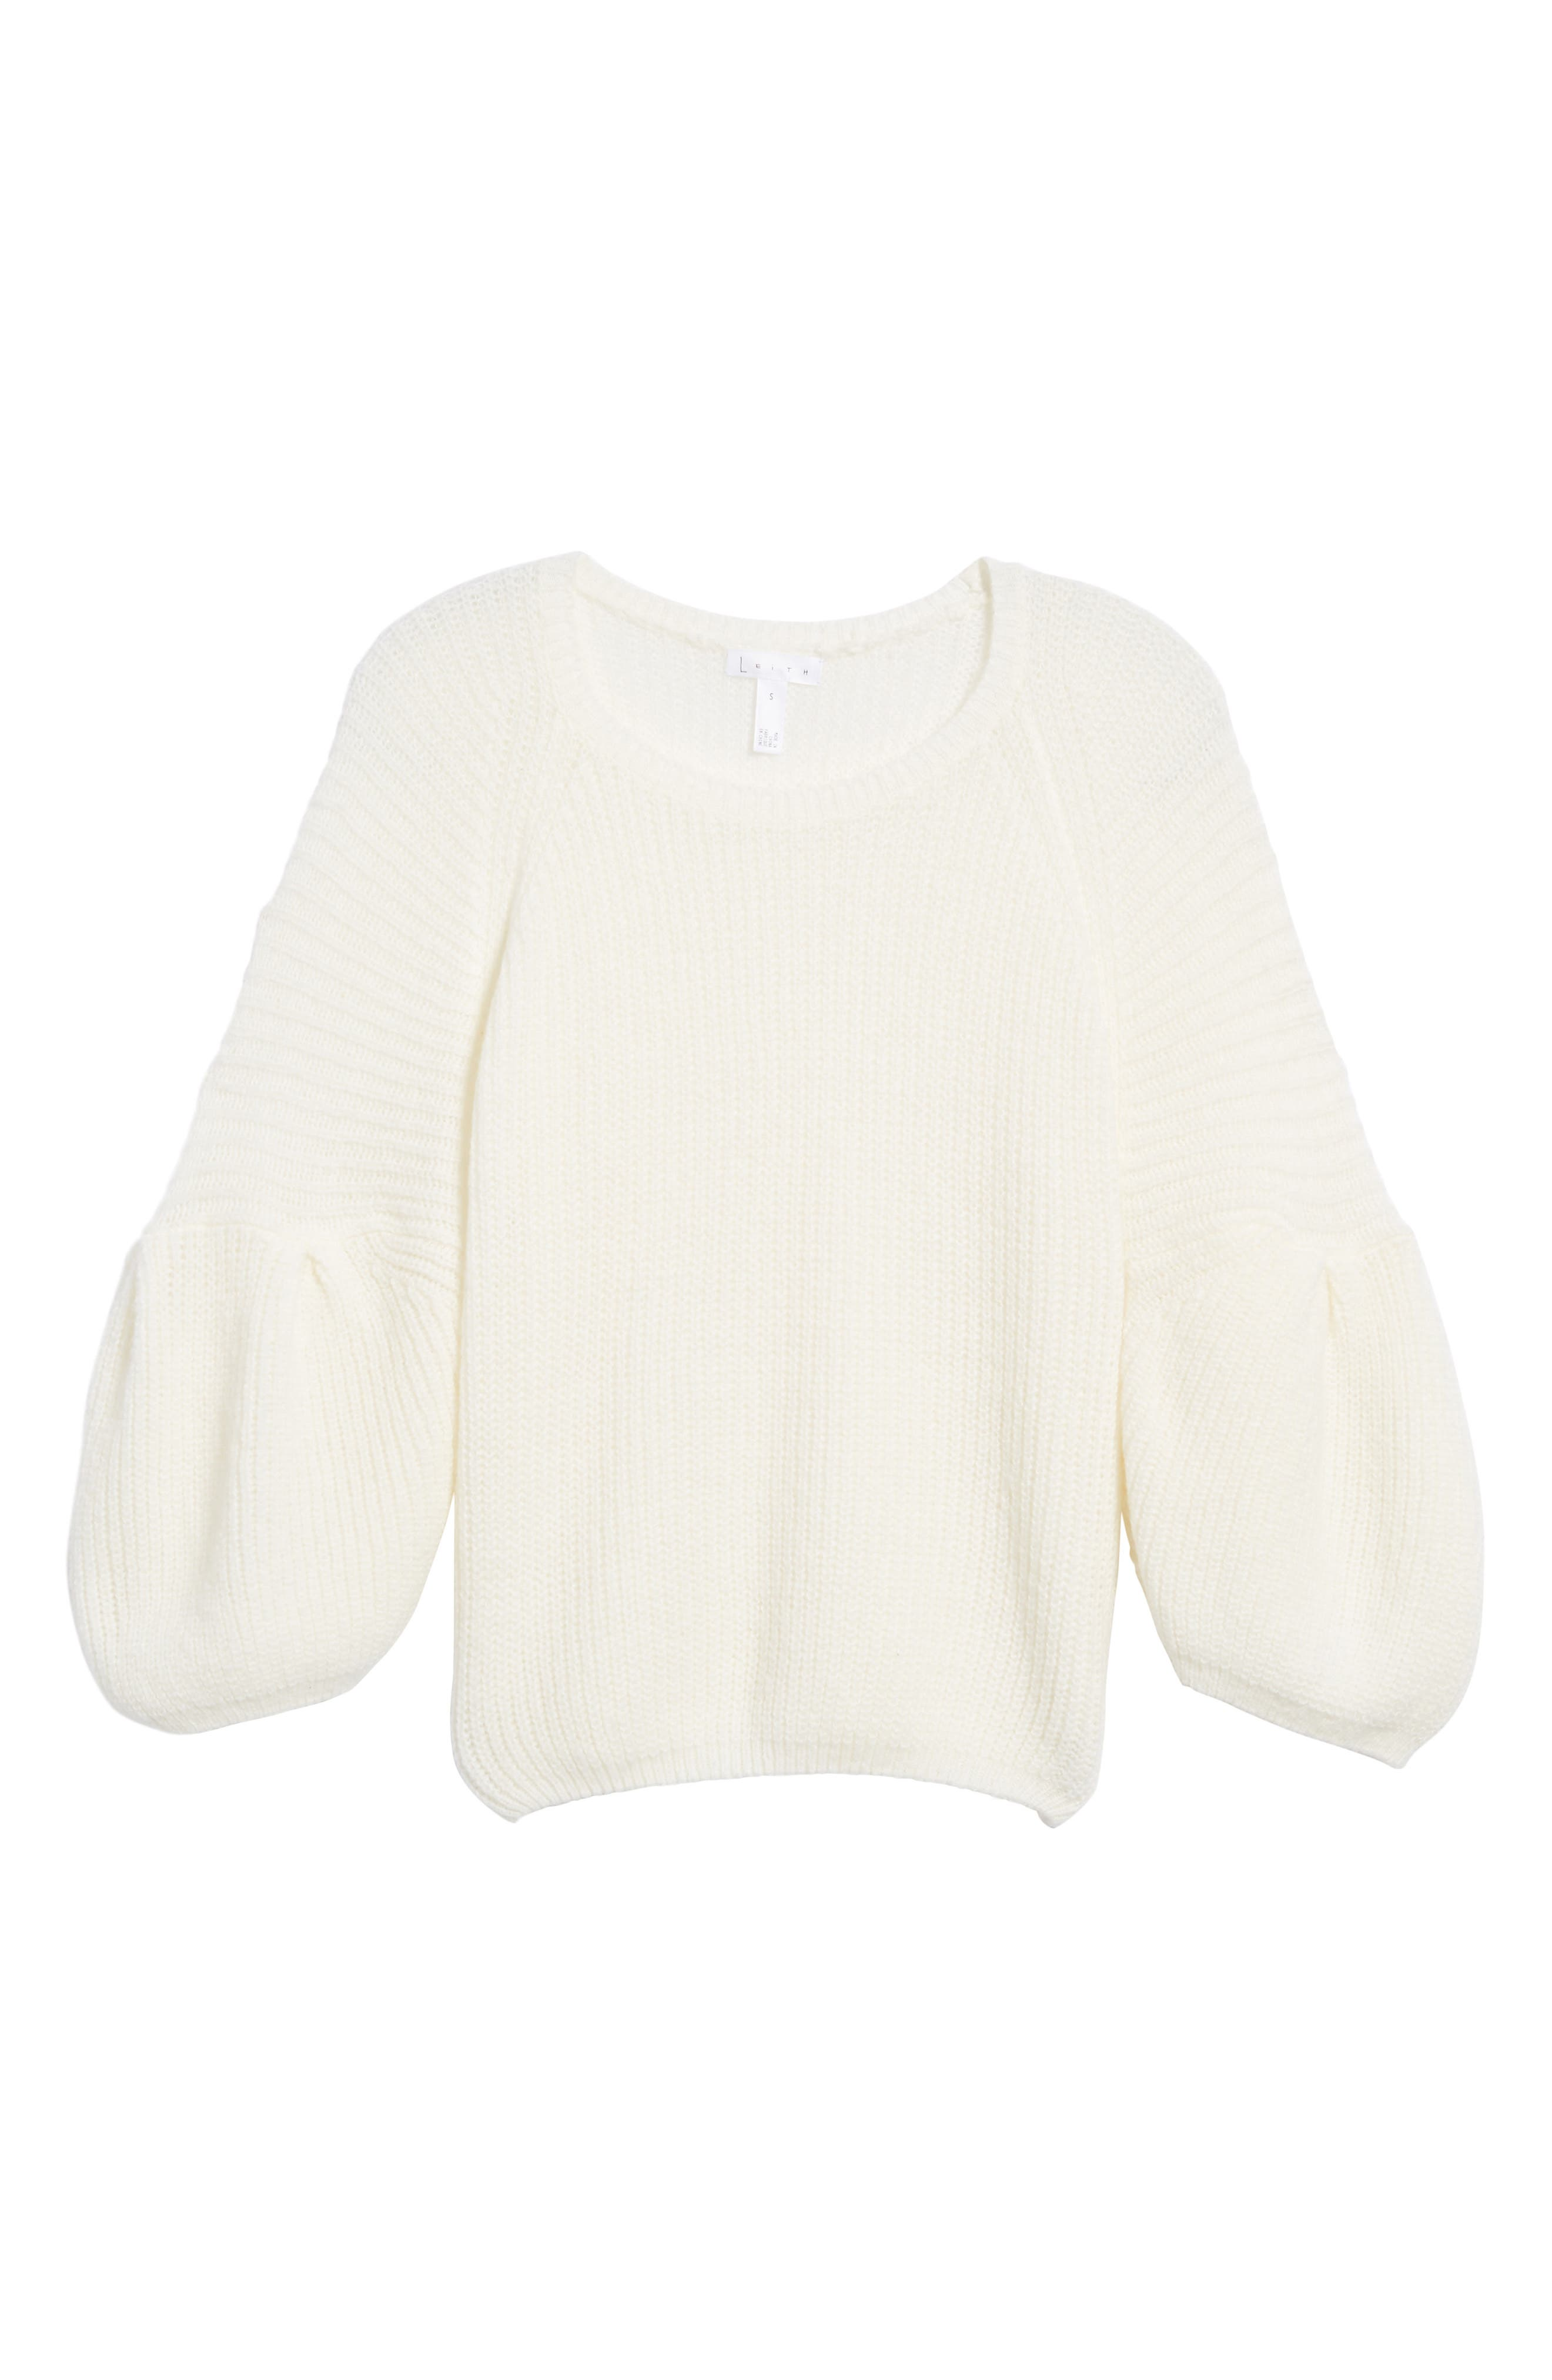 Bubble Sleeve Sweater,                             Alternate thumbnail 6, color,                             Ivory